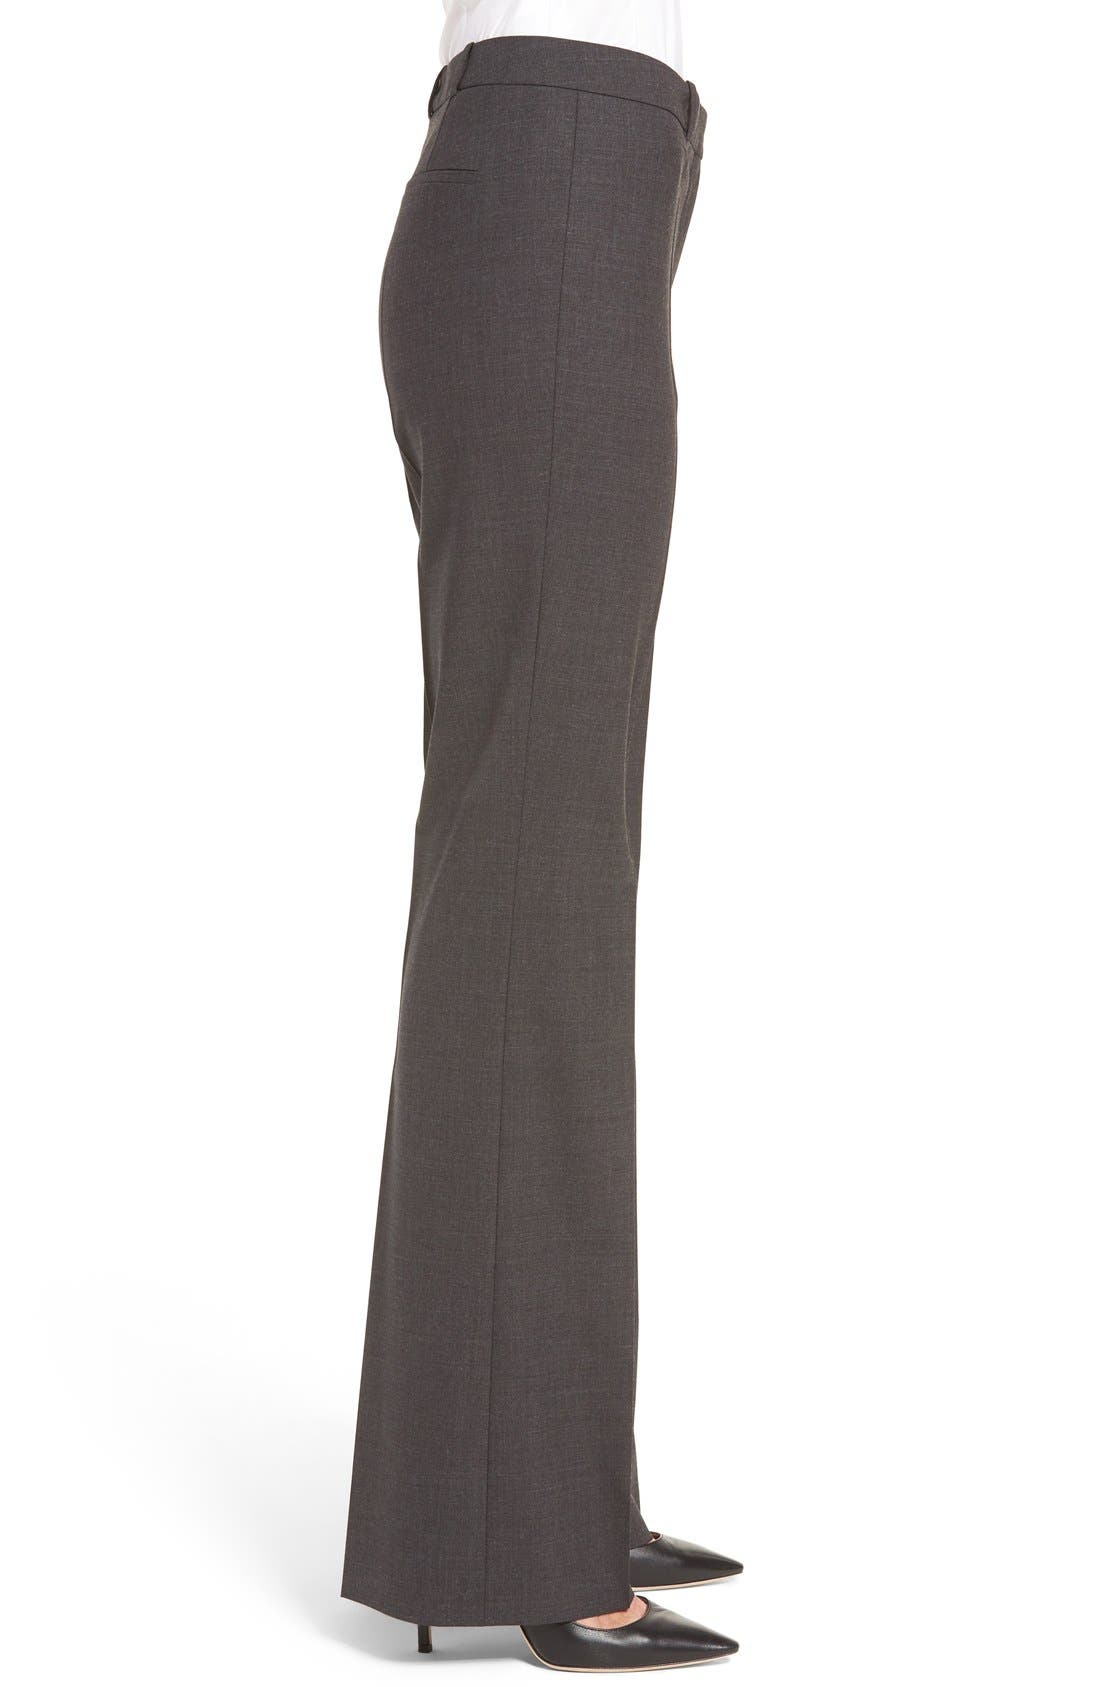 BOSS, Tulea3 Tropical Stretch Wool Trousers, Alternate thumbnail 7, color, CHARCOAL